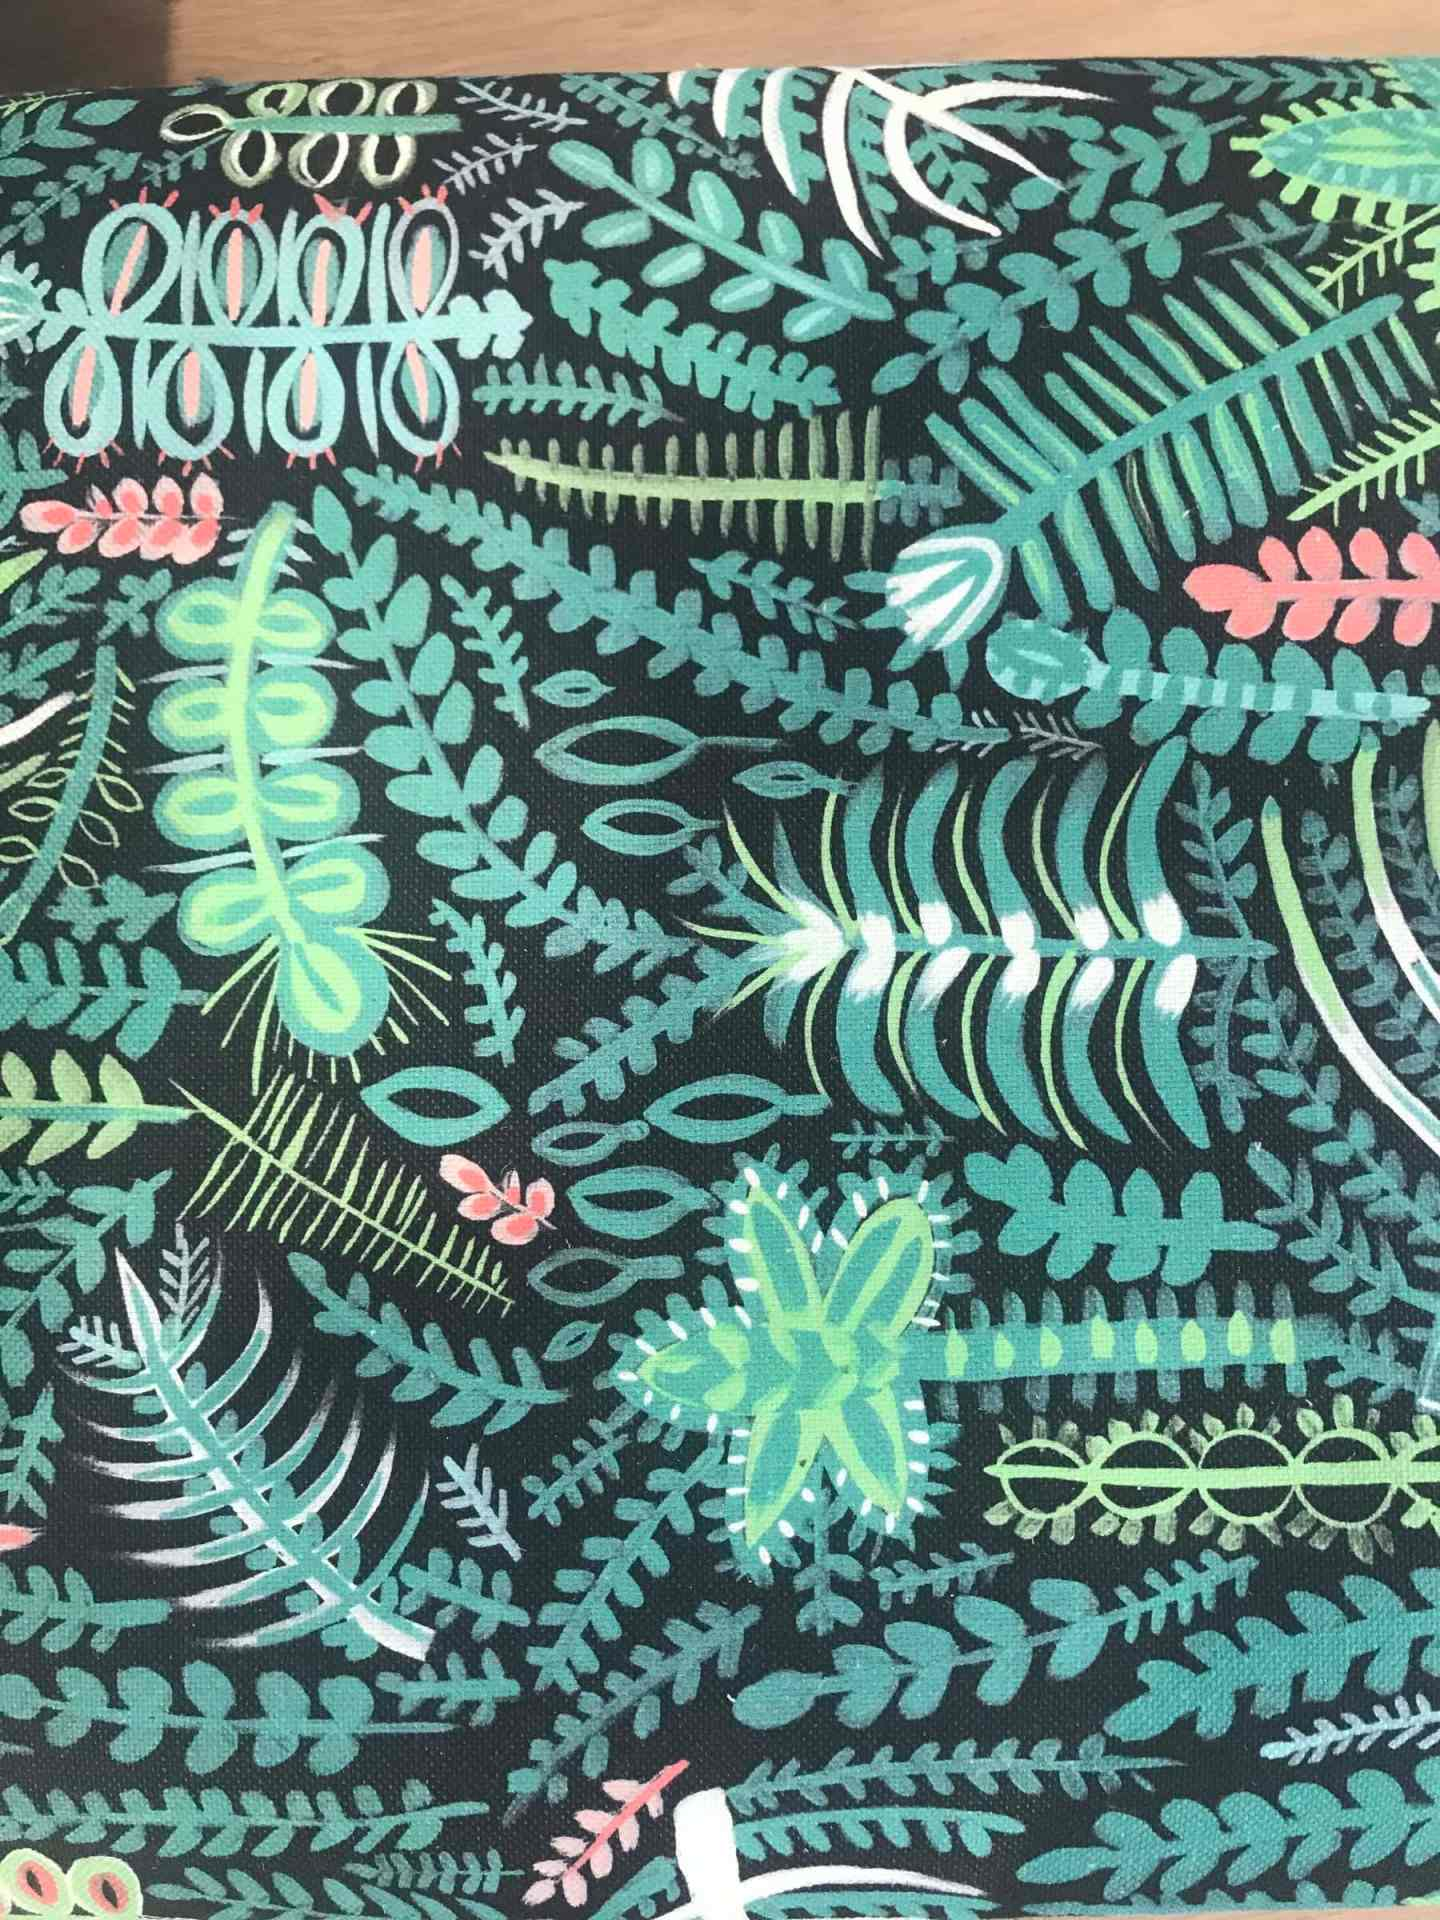 I just love this pattern by Lucy Tiffney